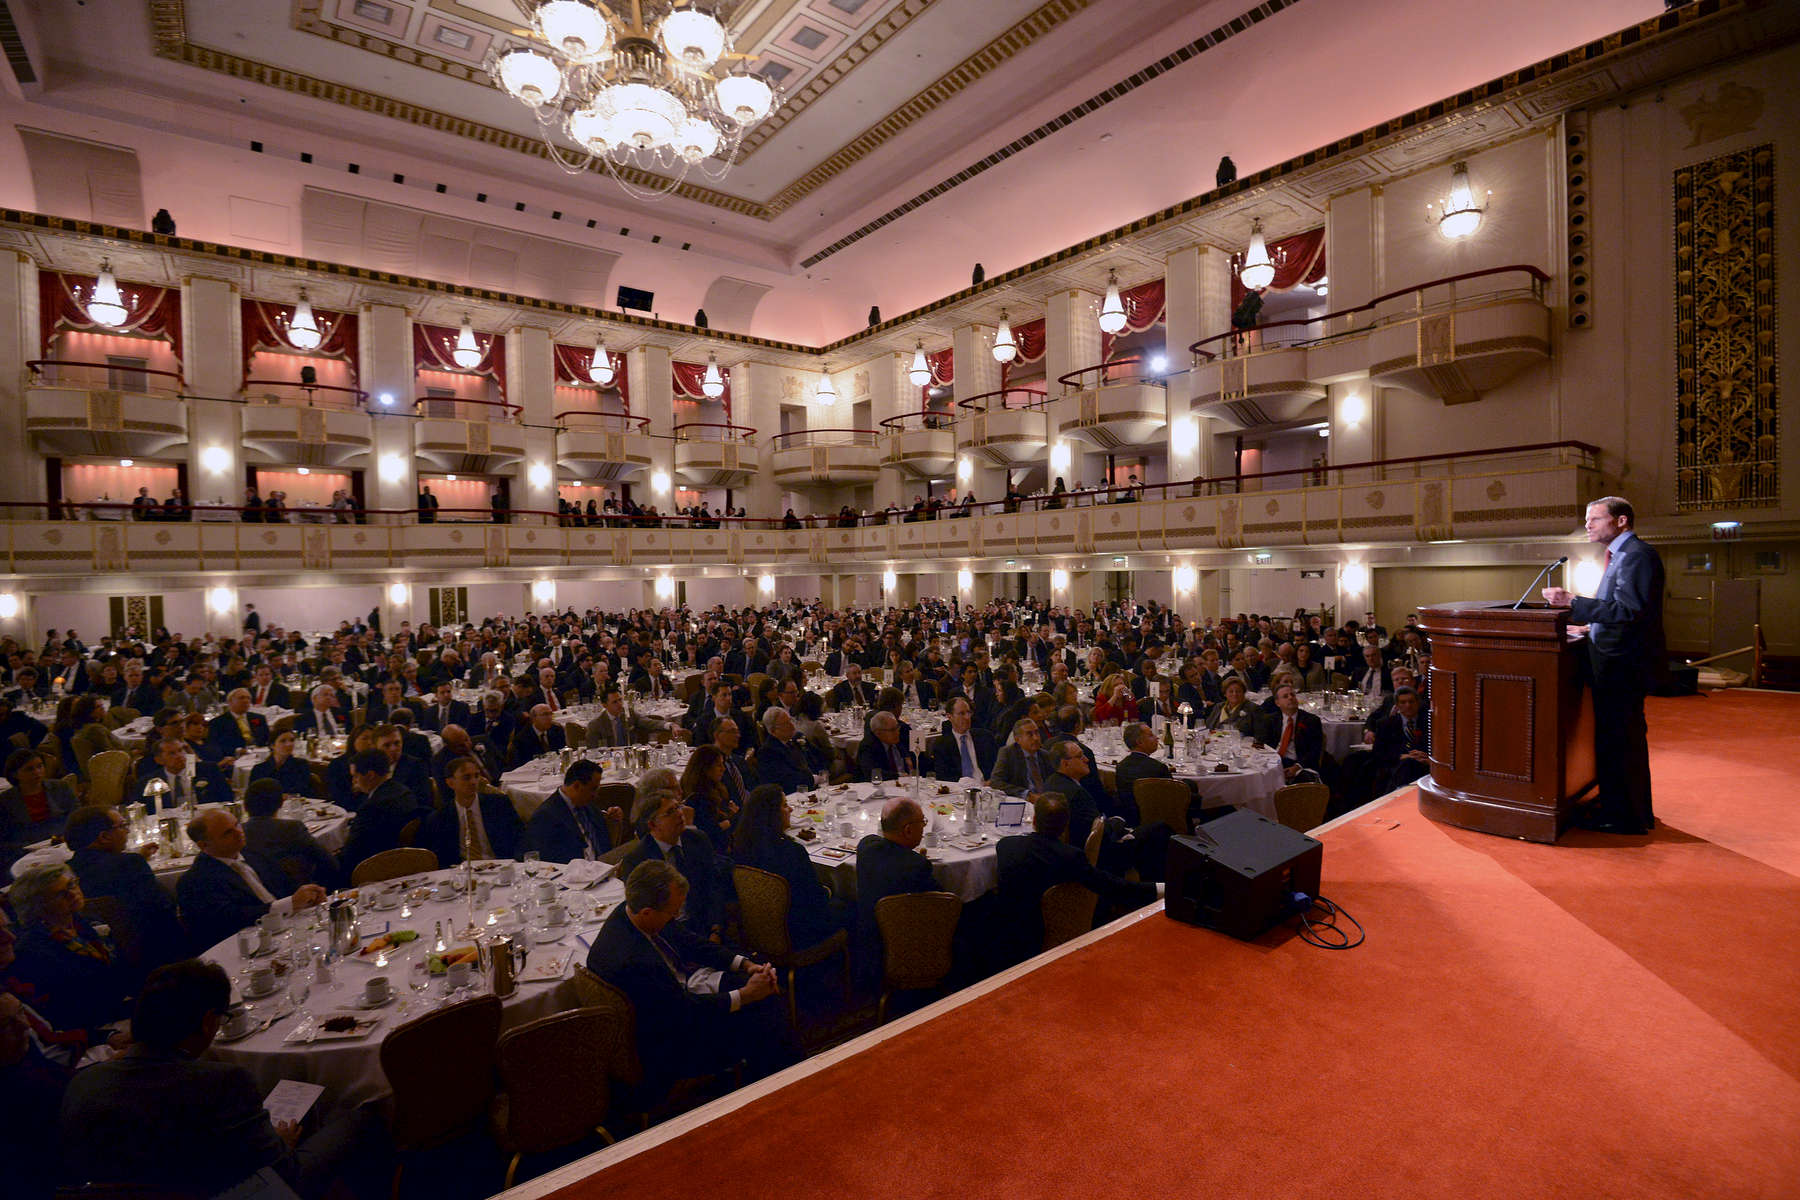 Connecticut U. S. Senator Richard Blumenthal addresses the crowd after he was presented with the Emory Buckner Medal in recognition of his outstanding public service, at the 2014 Federal Bar Council Thanksgiving Luncheon. Waldorf-Astoria Hotel Wednesday November 26, 2014